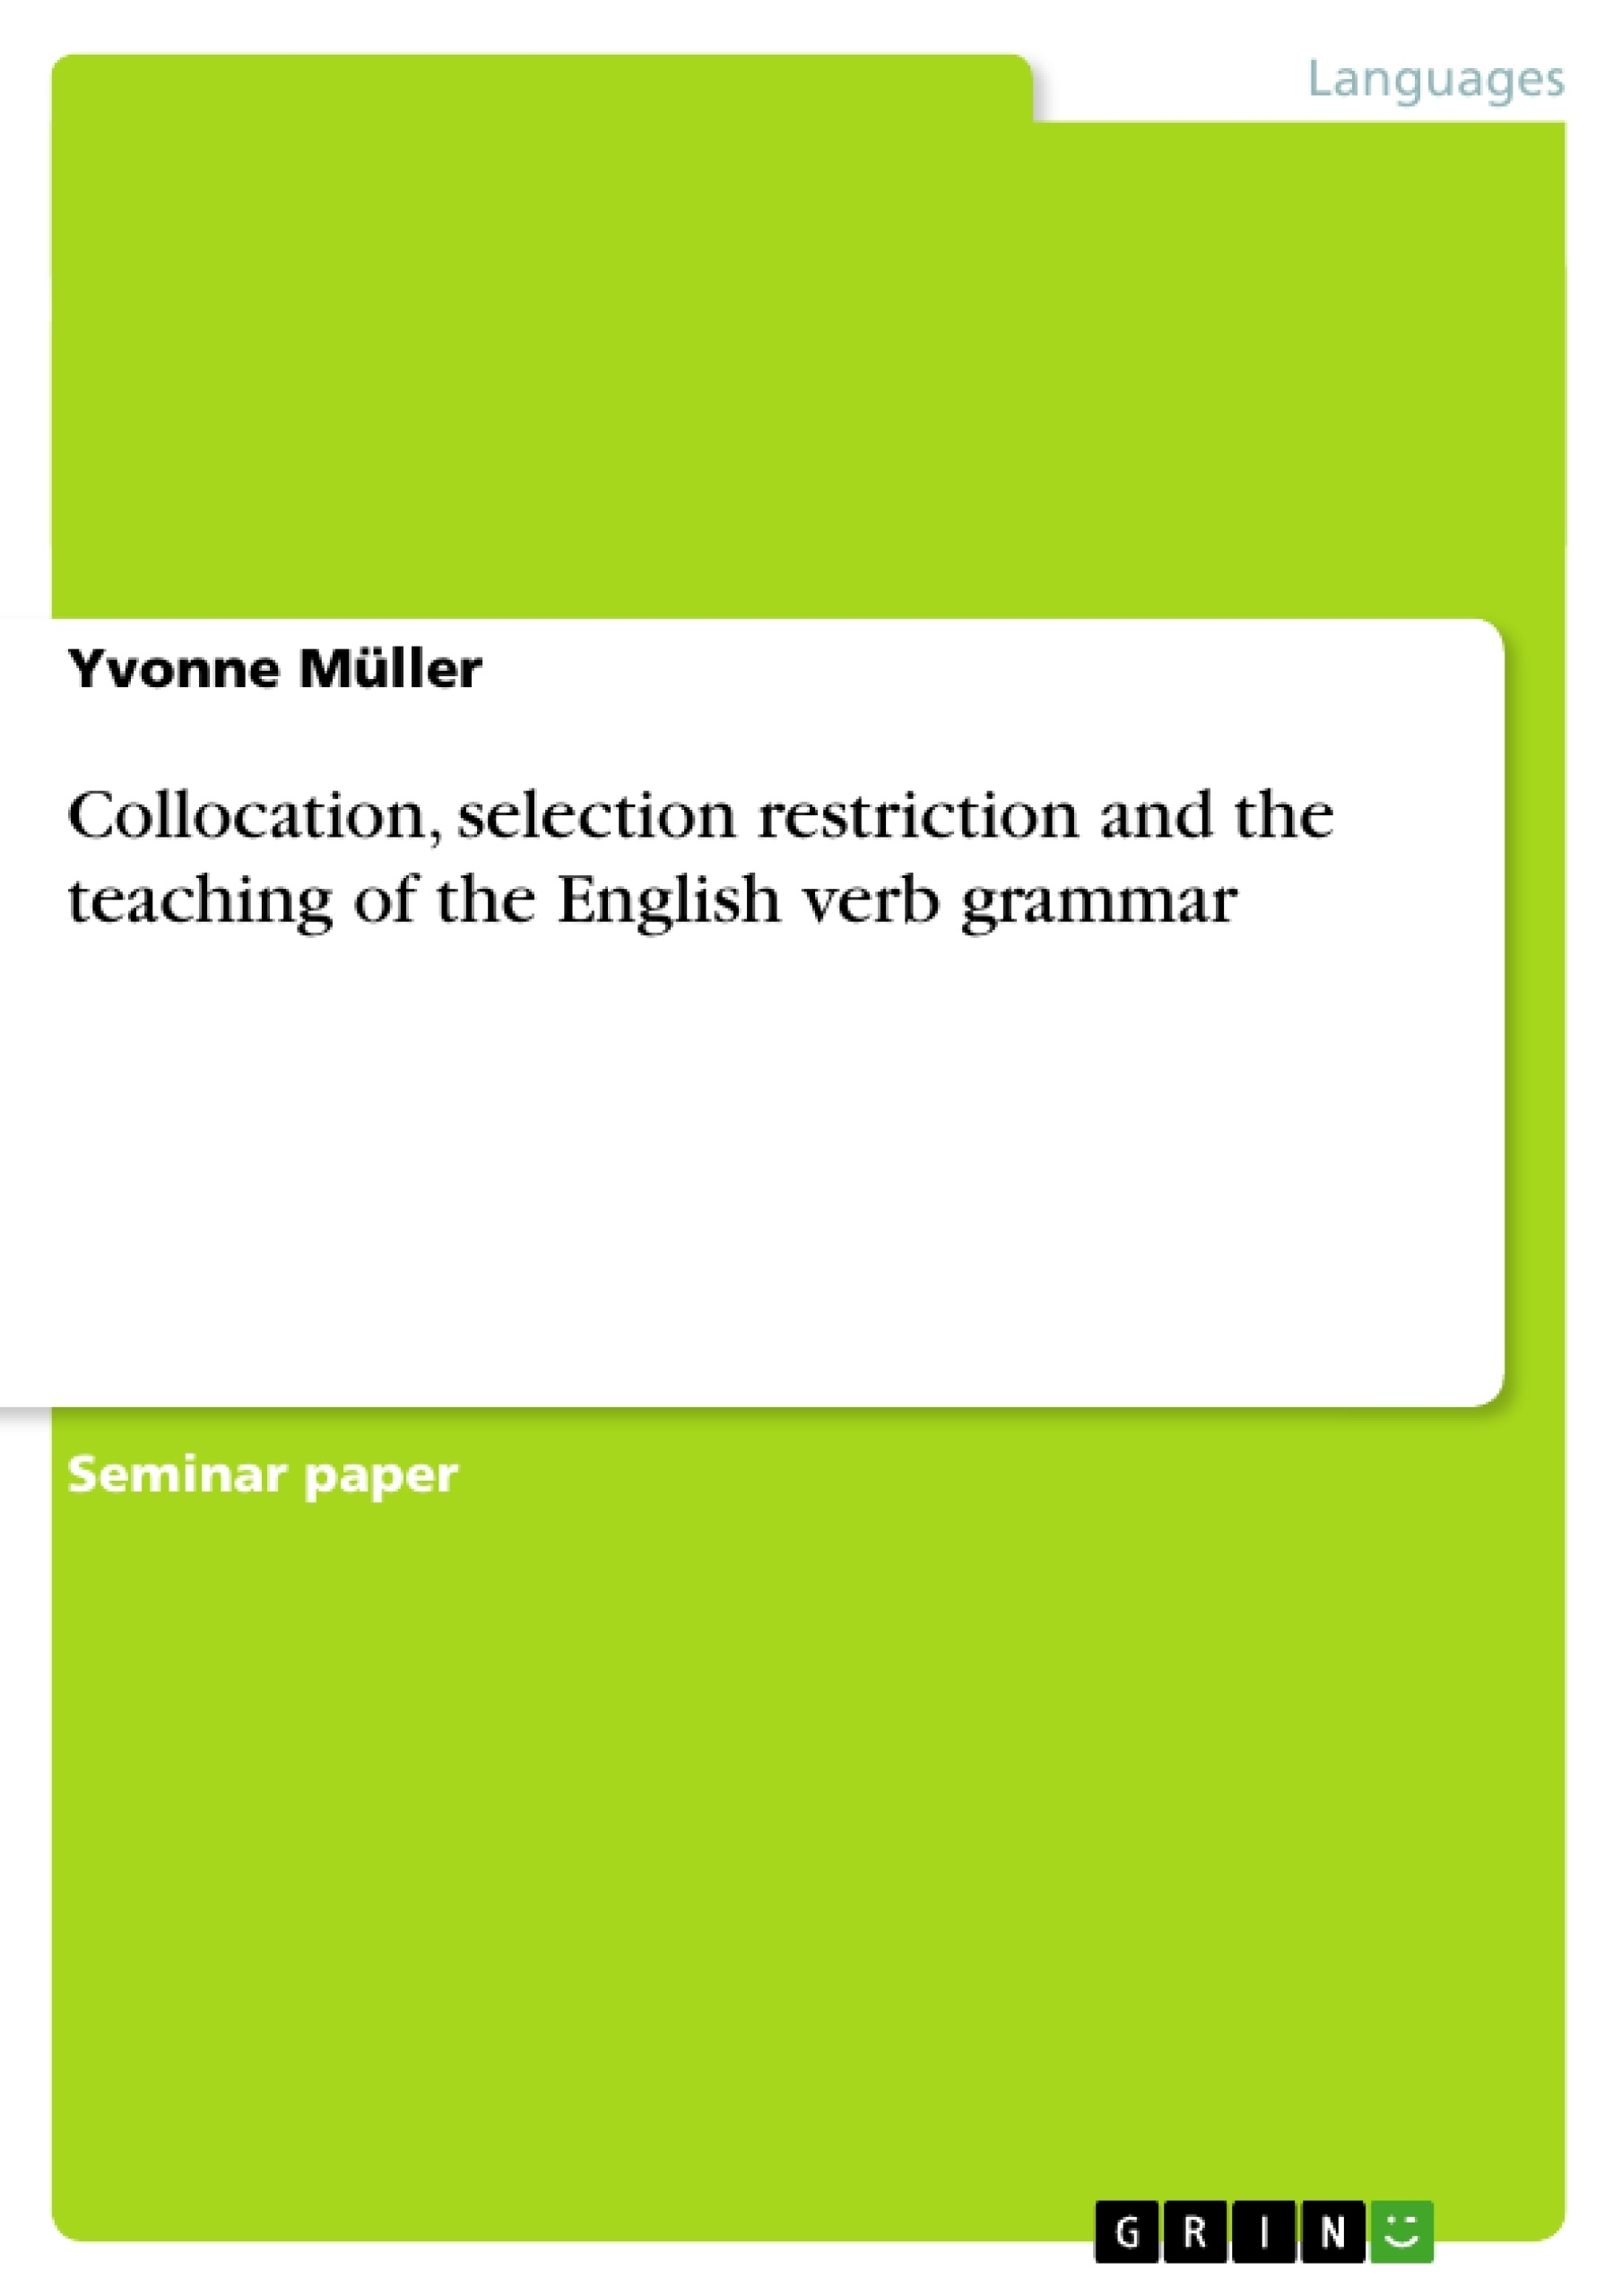 Title: Collocation, selection restriction and the teaching of the English verb grammar